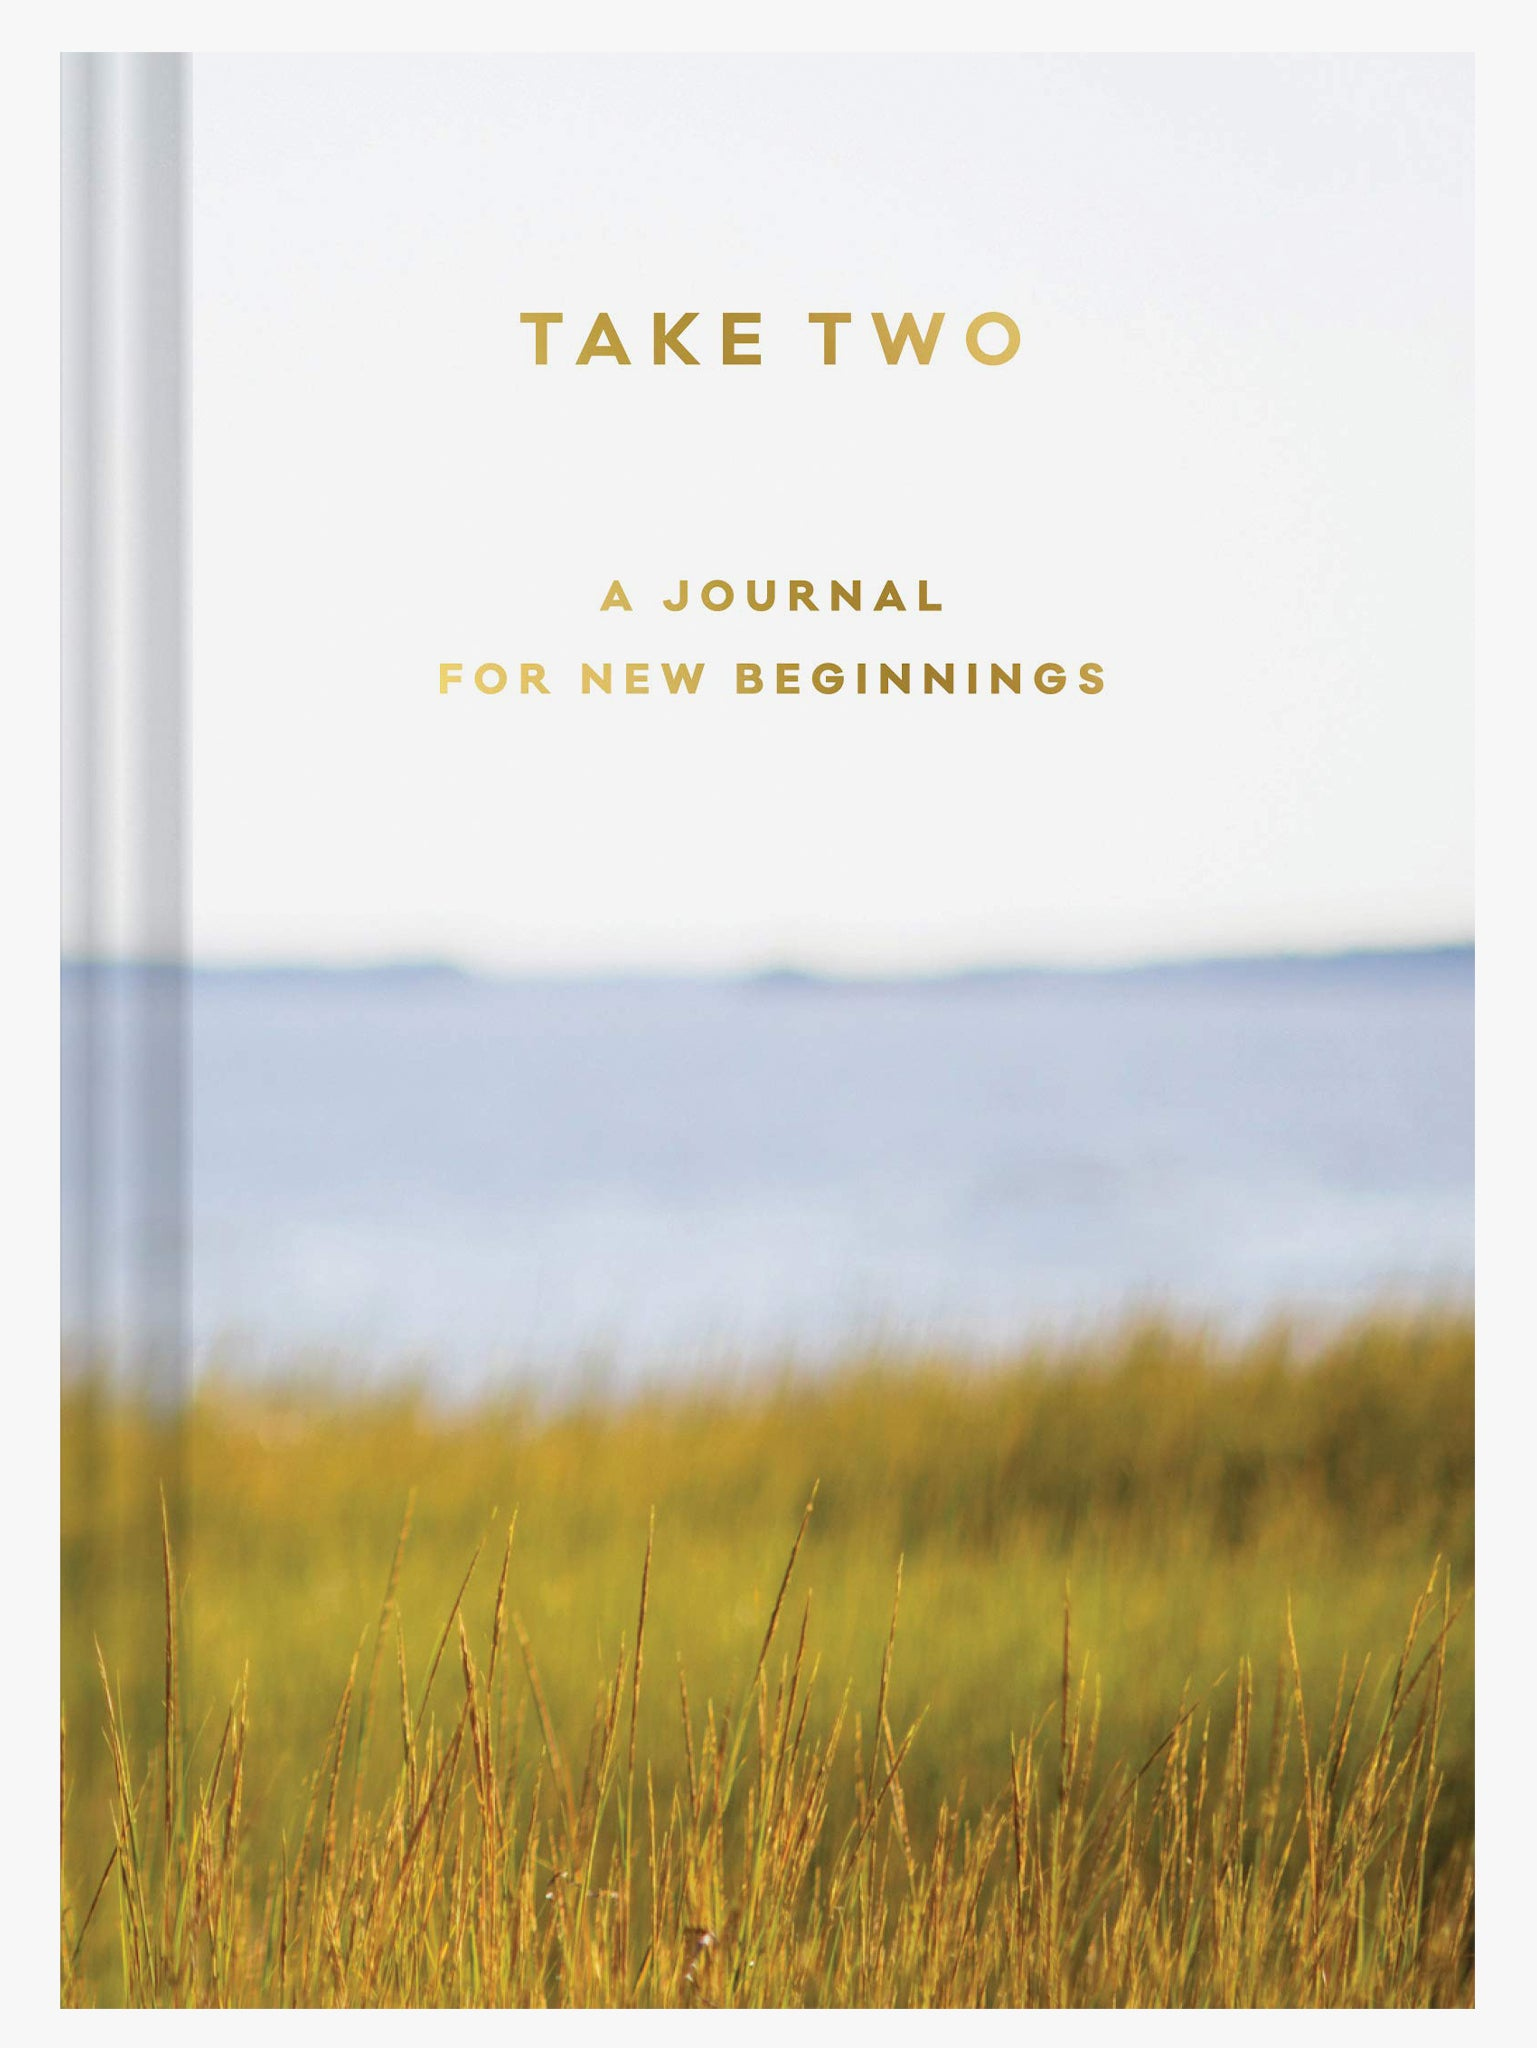 Take Two - A Journal for New Beginnings